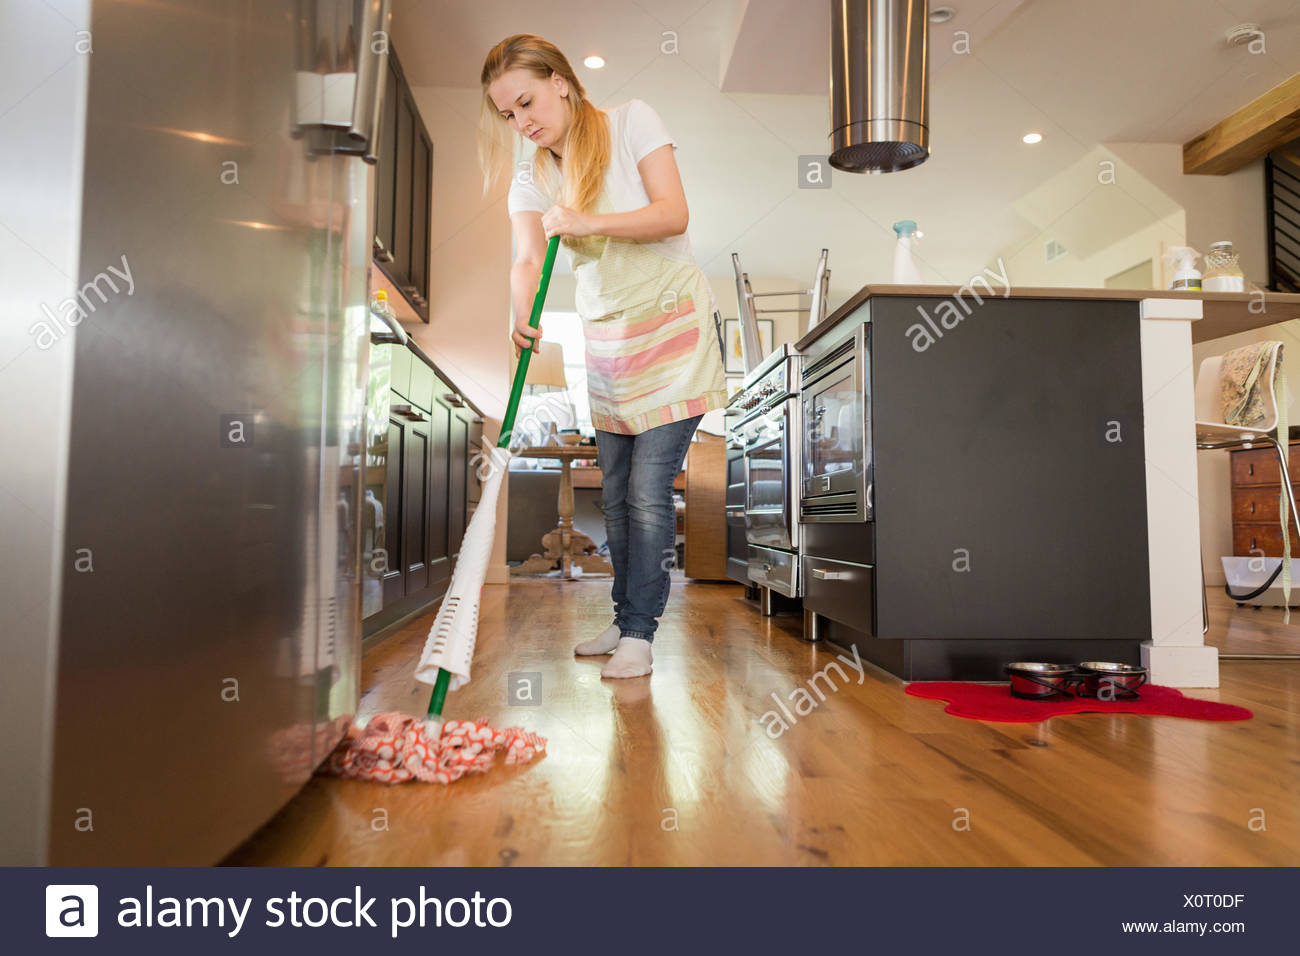 Young woman mopping with green cleaning products - Stock Image